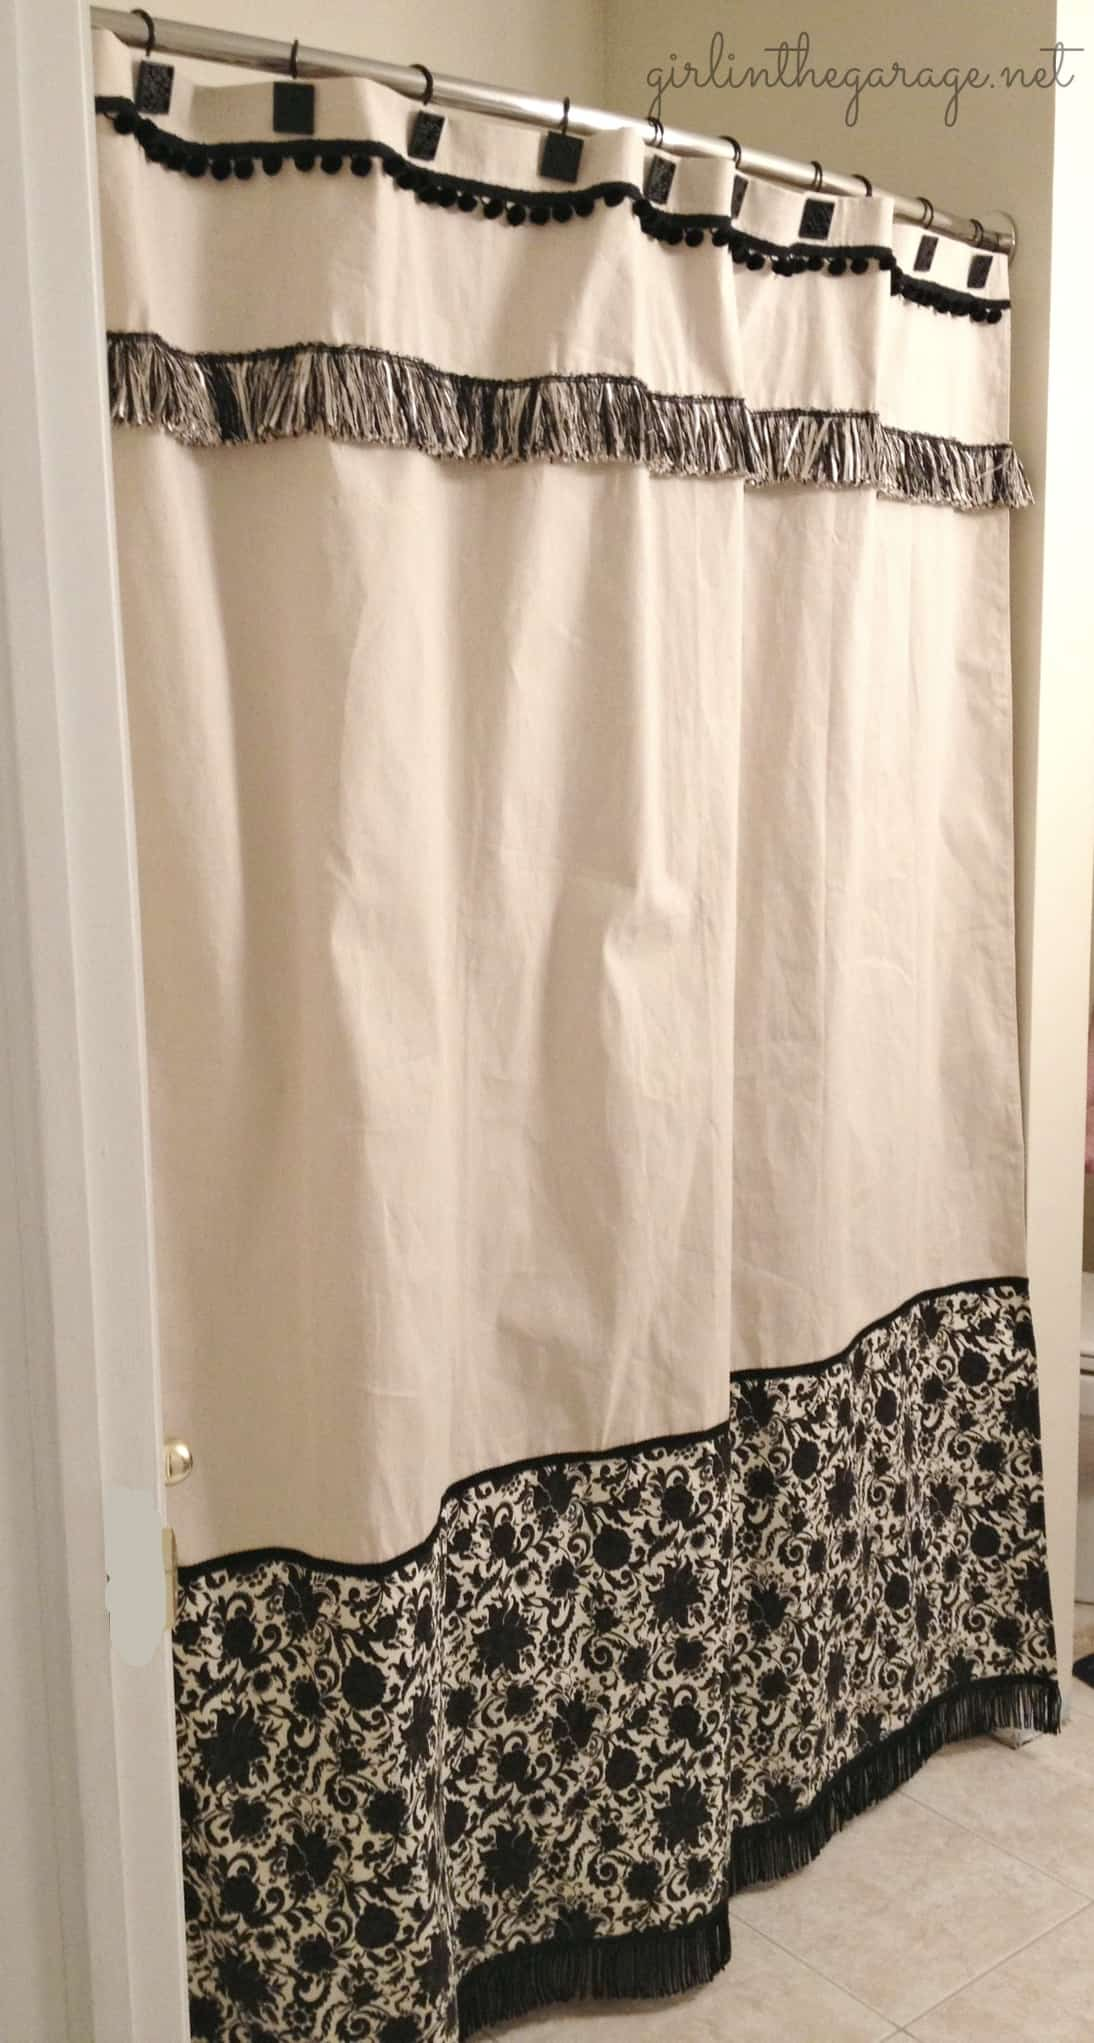 How To Make Shower Curtain Cheap And Easy Diy Shower Curtain Ideas